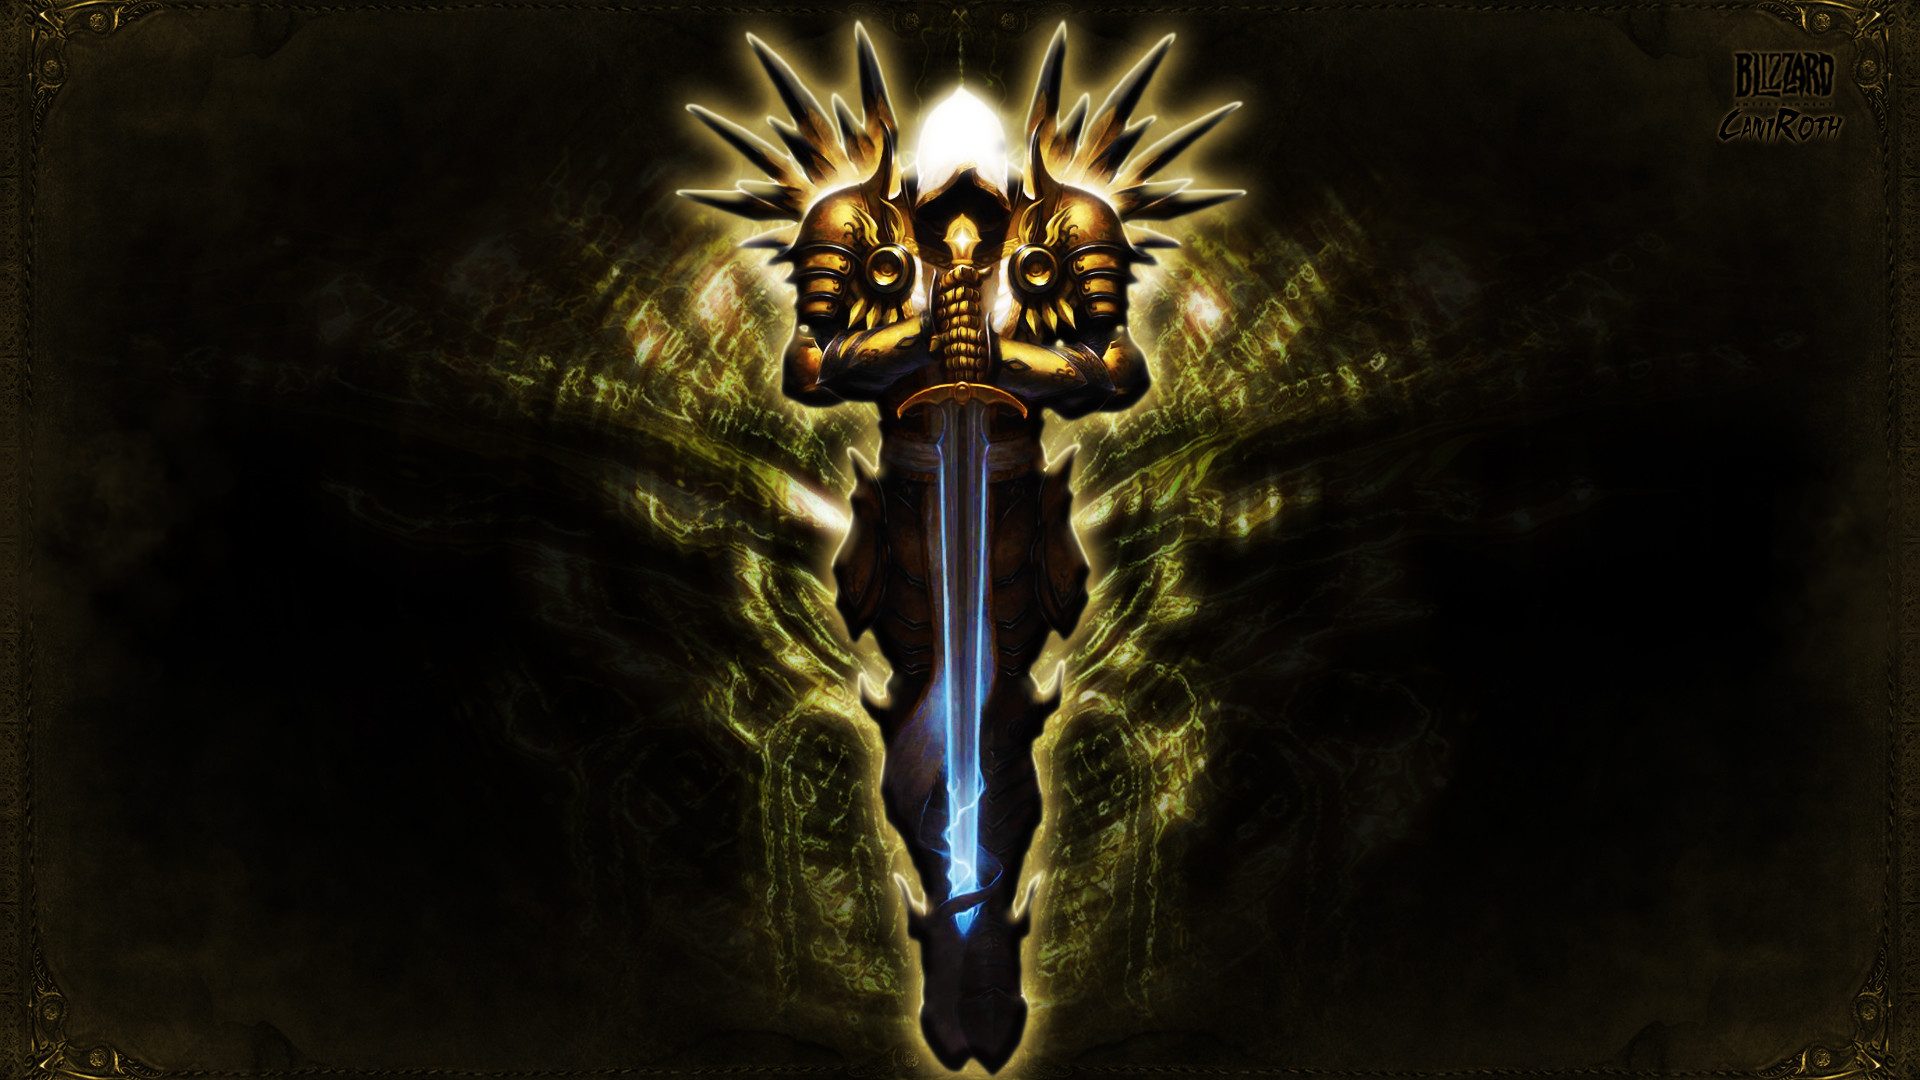 Res: 1920x1080, Tyrael 1 wallpaper from Diablo 3 wallpapers